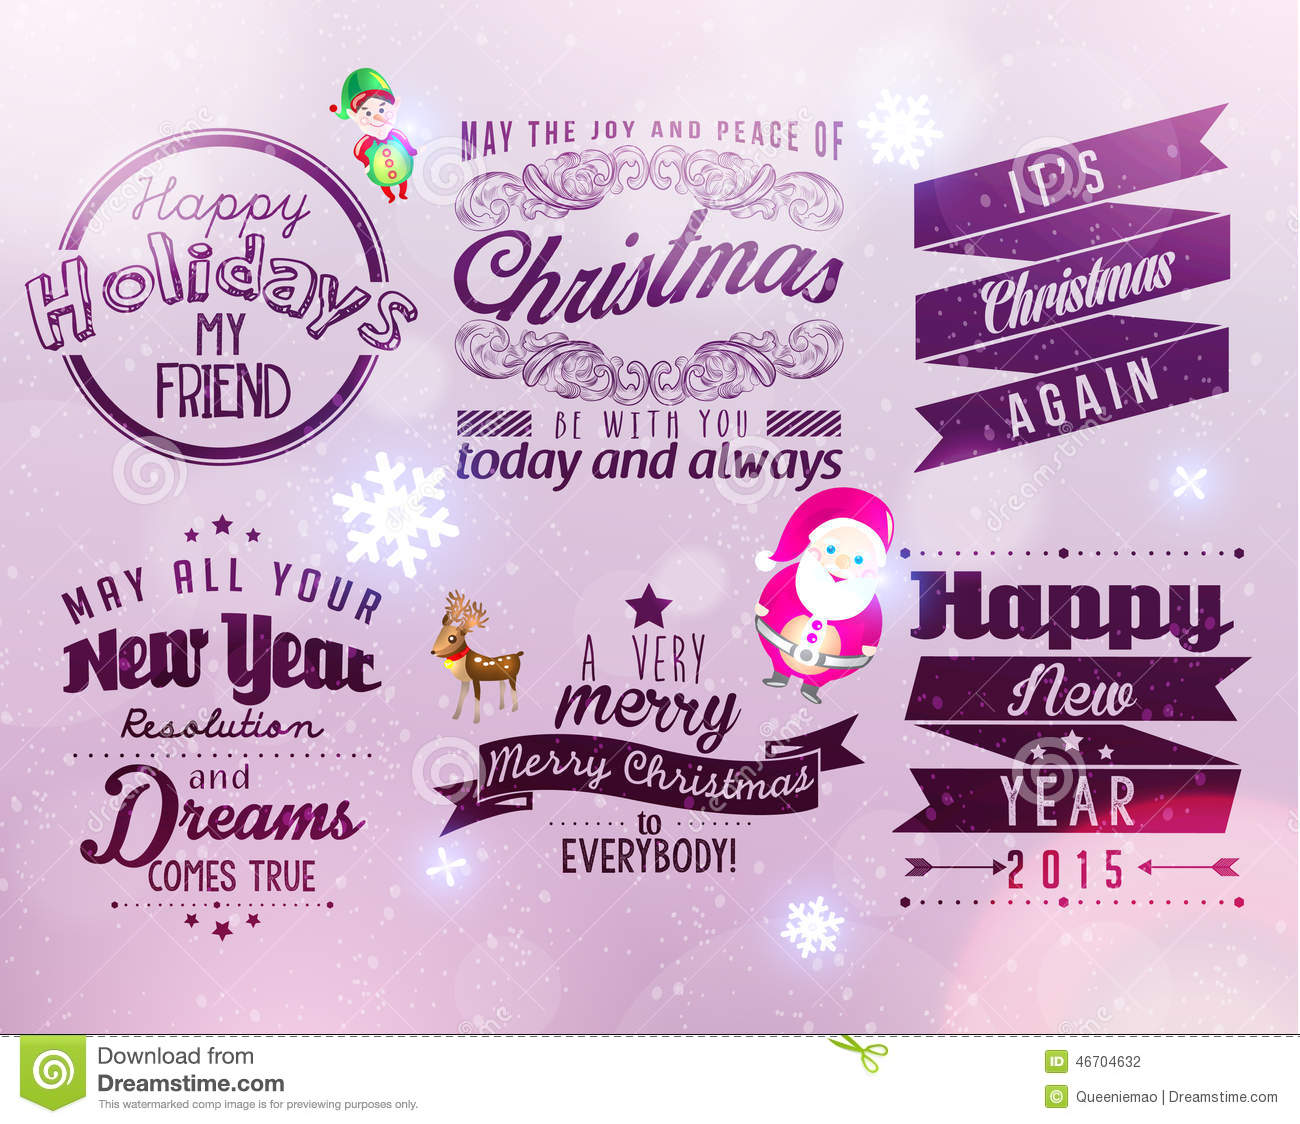 search results for �2015 new year animation quote